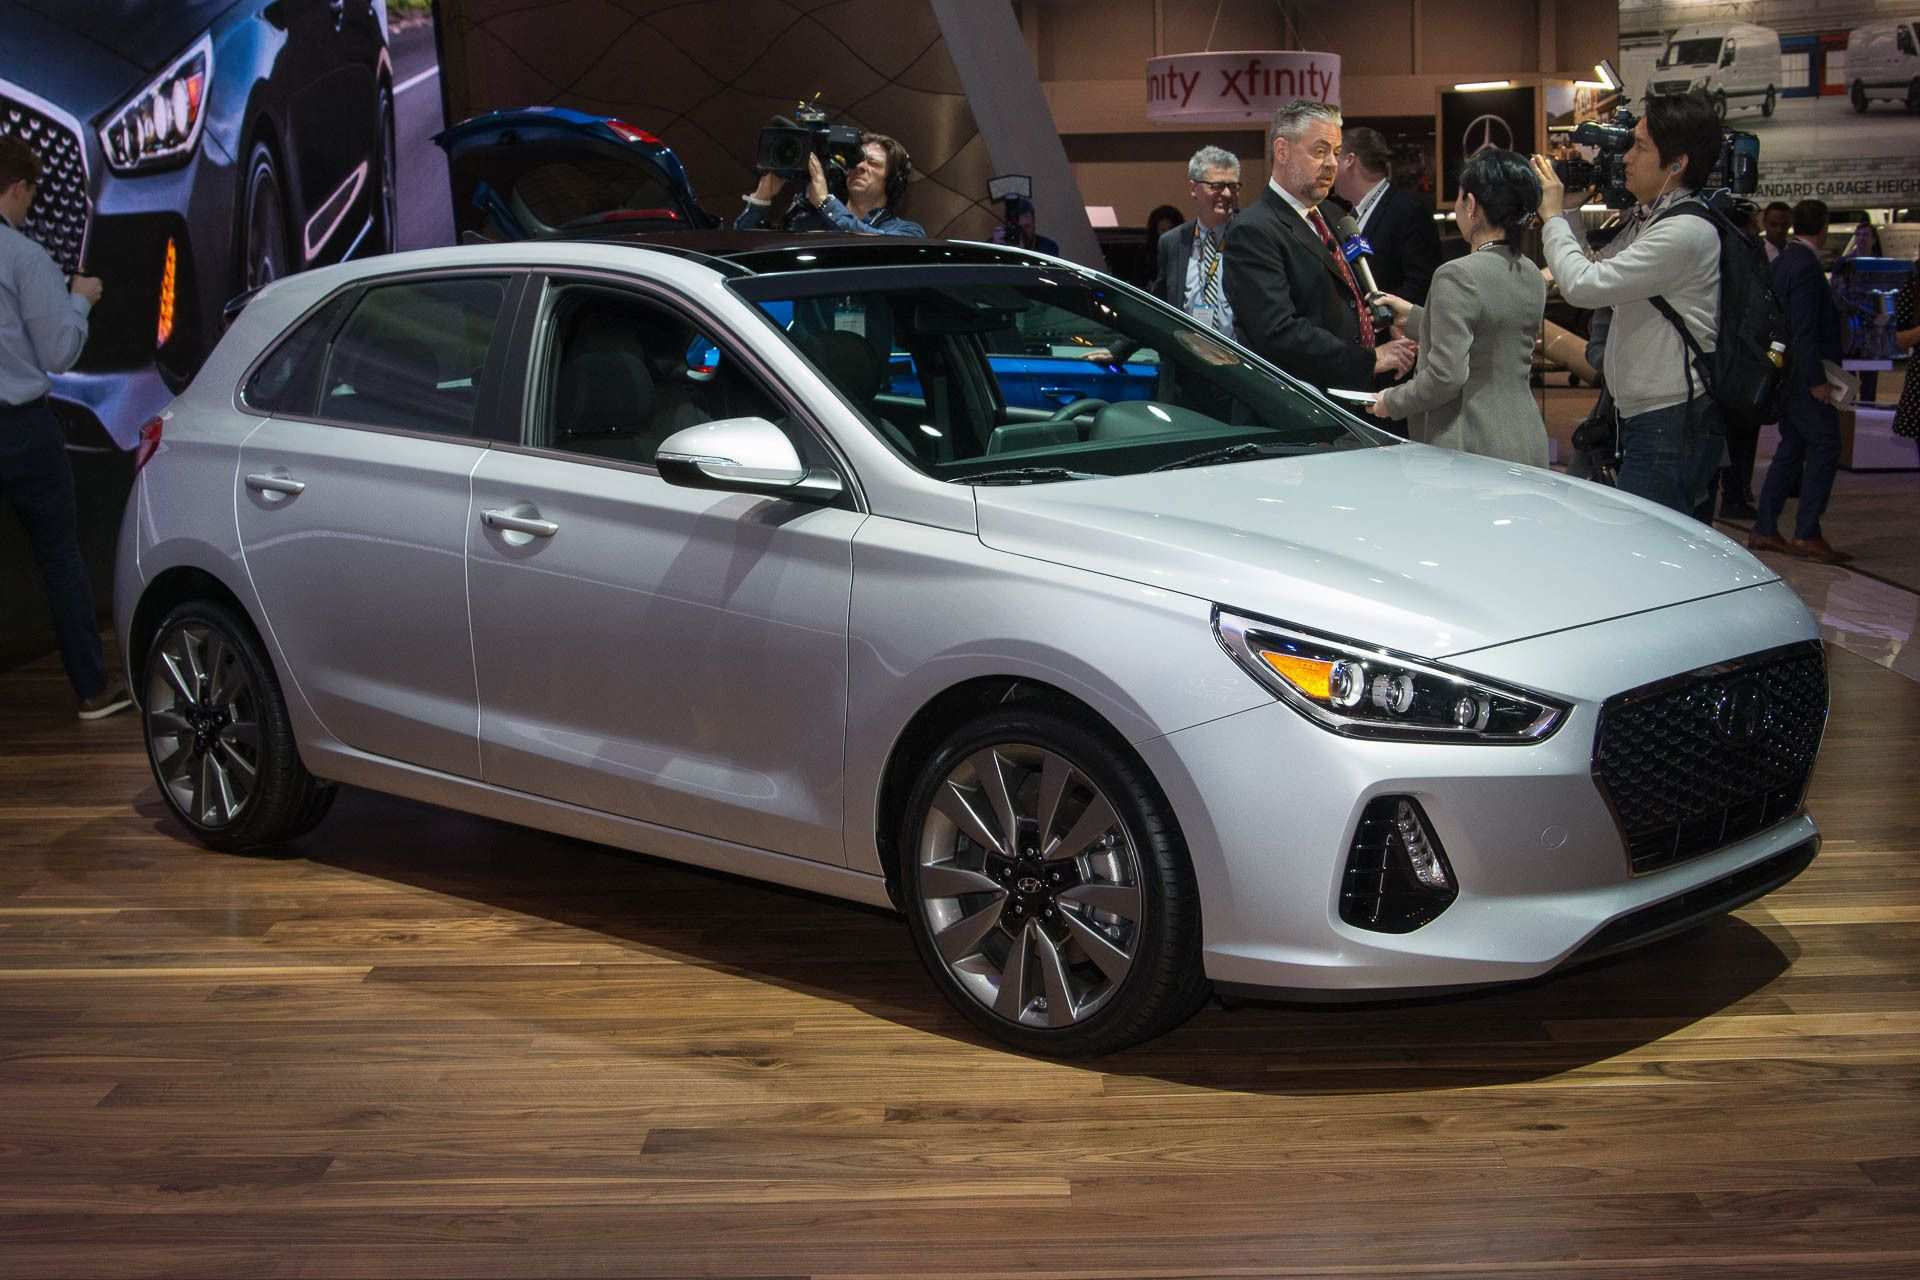 65 The 2020 Hyundai Accent Hatchback Price